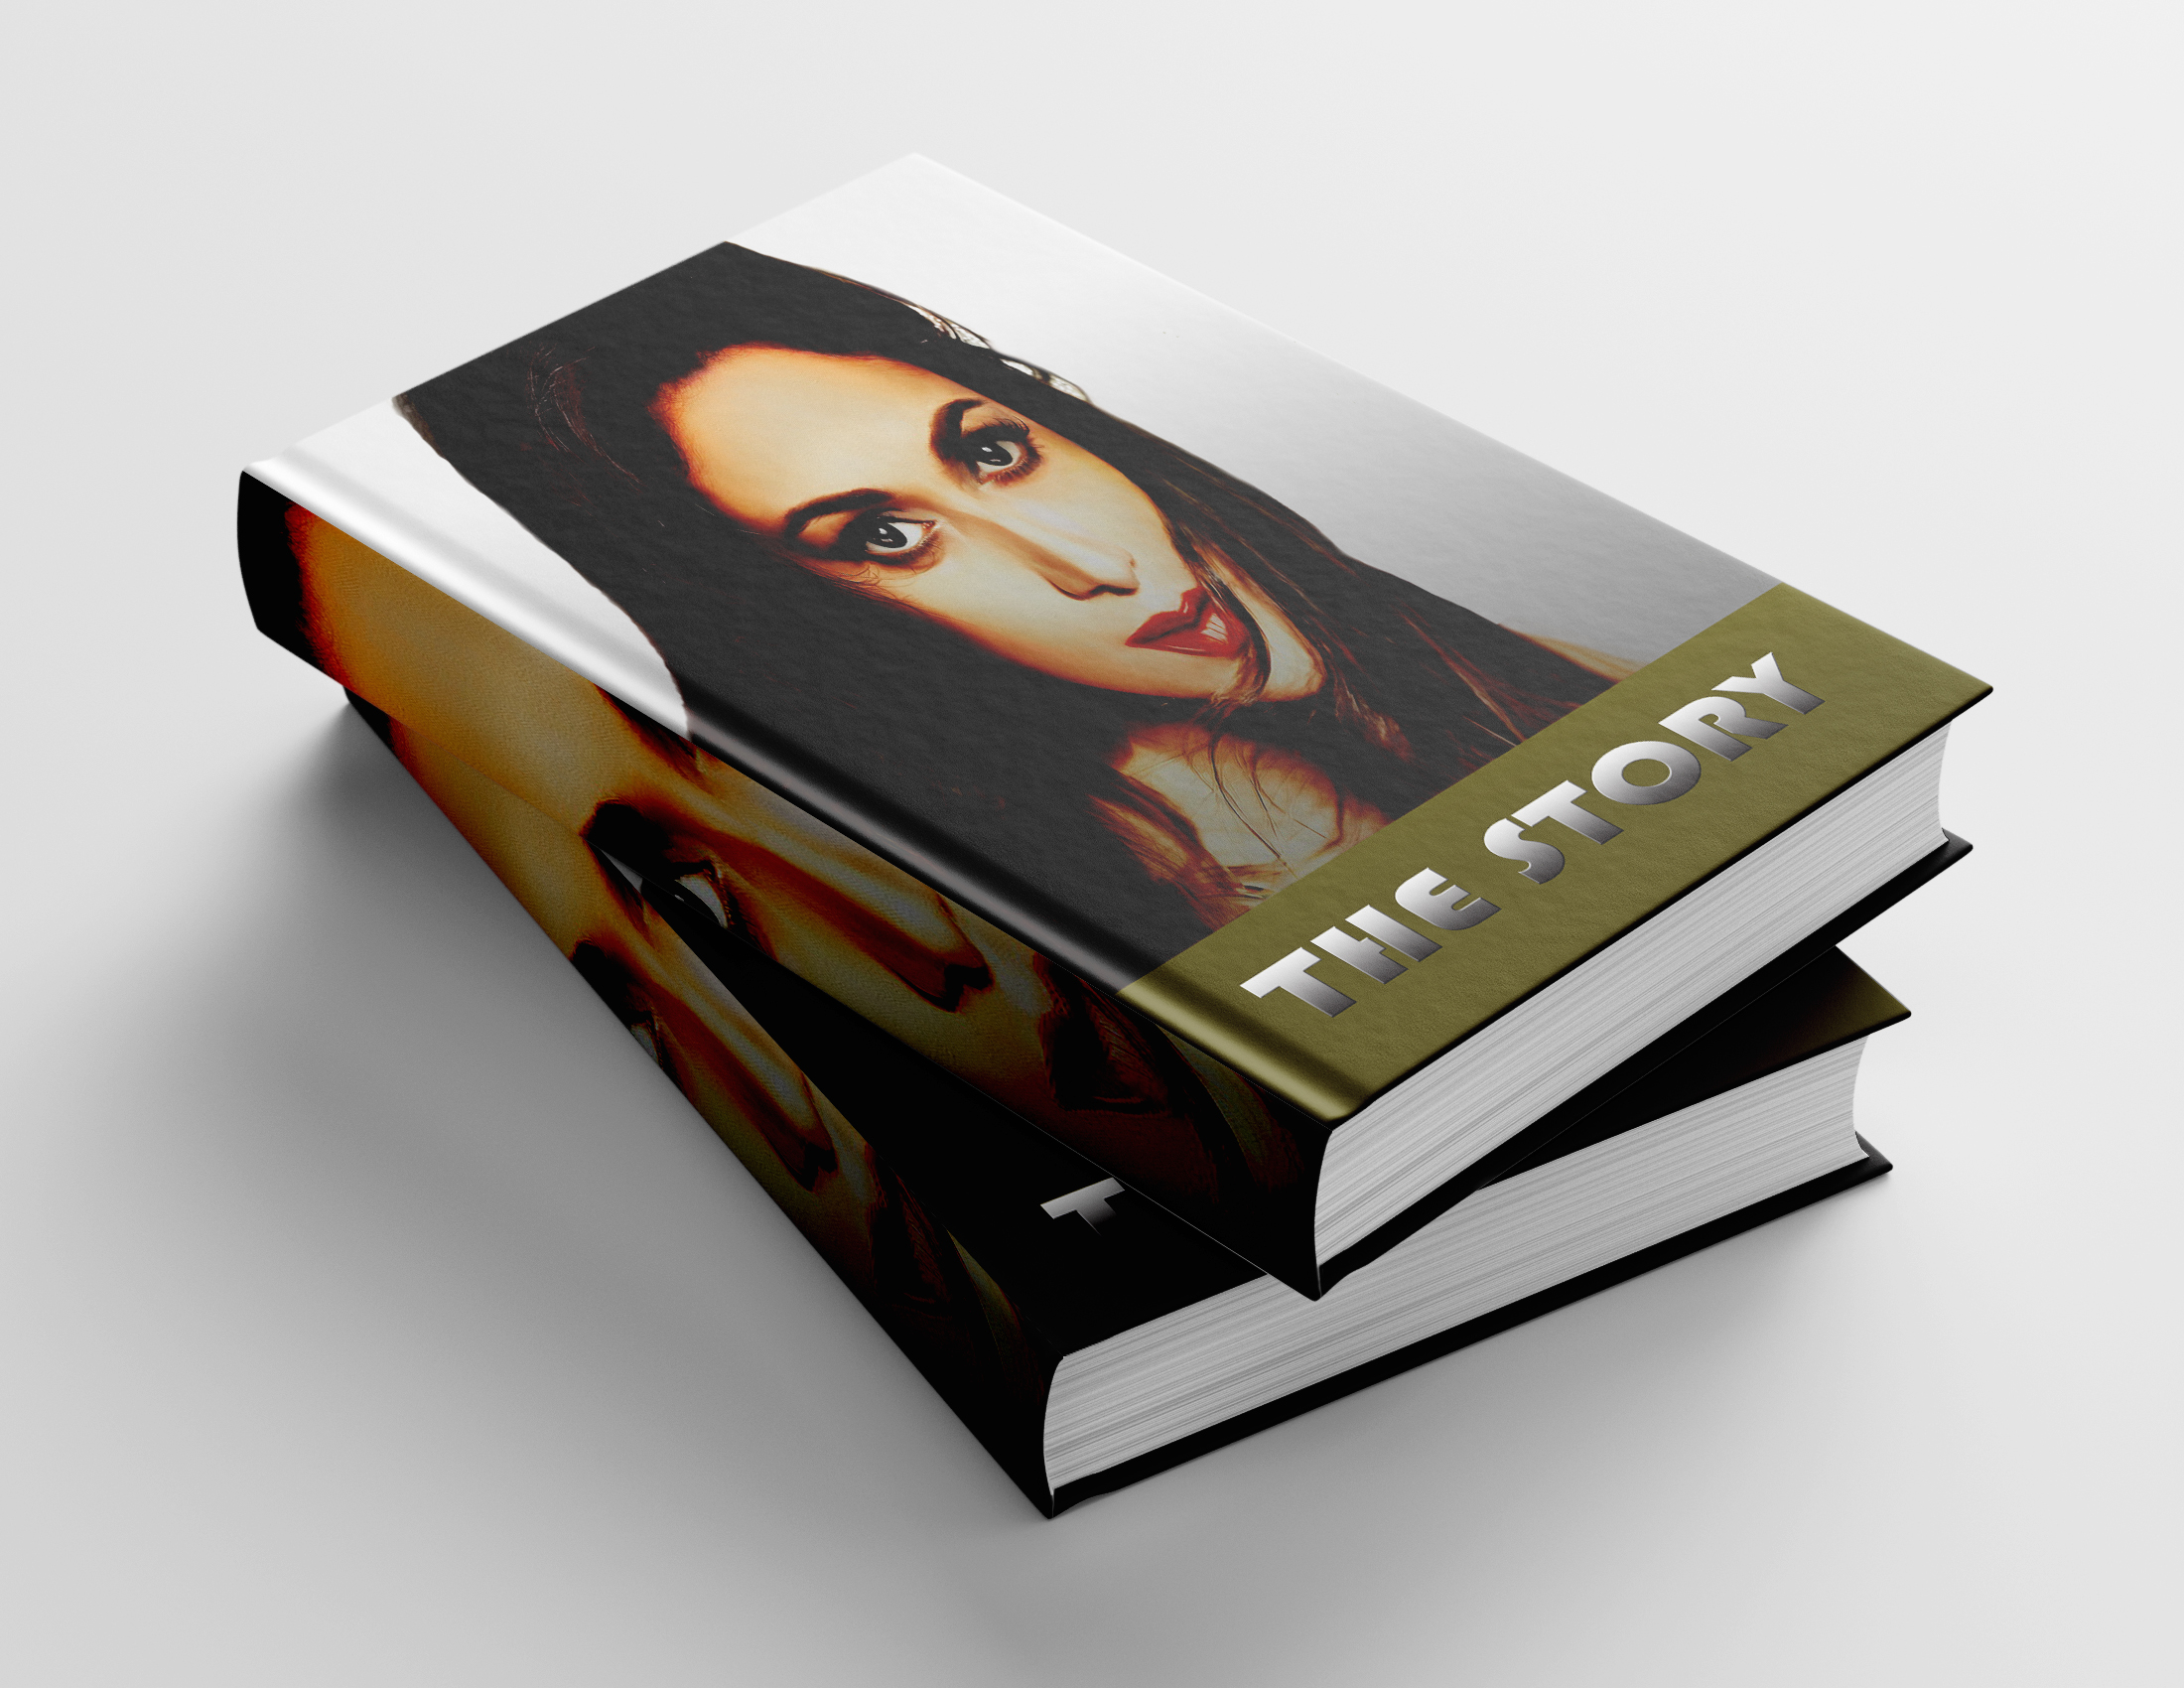 I WILL CREATE A PROFESSIONAL BEAUTIFUL E-BOOK COVER FOR YOU